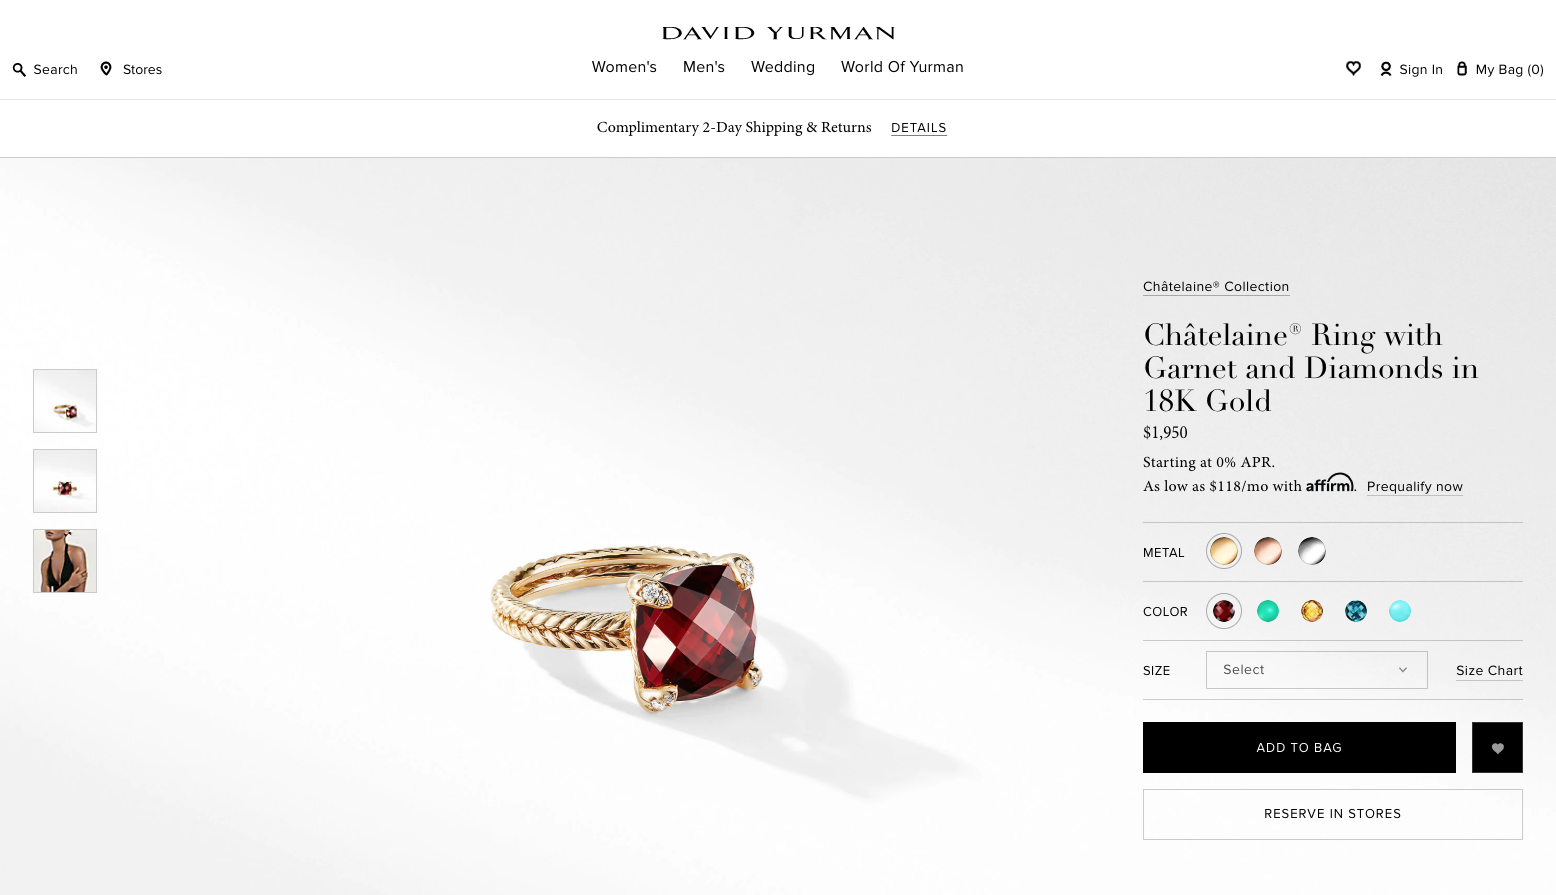 David Yurman has a unique approach to lighting, and clearly invests in the scaling shots, a very important feature for fine jewelry product detail pages.